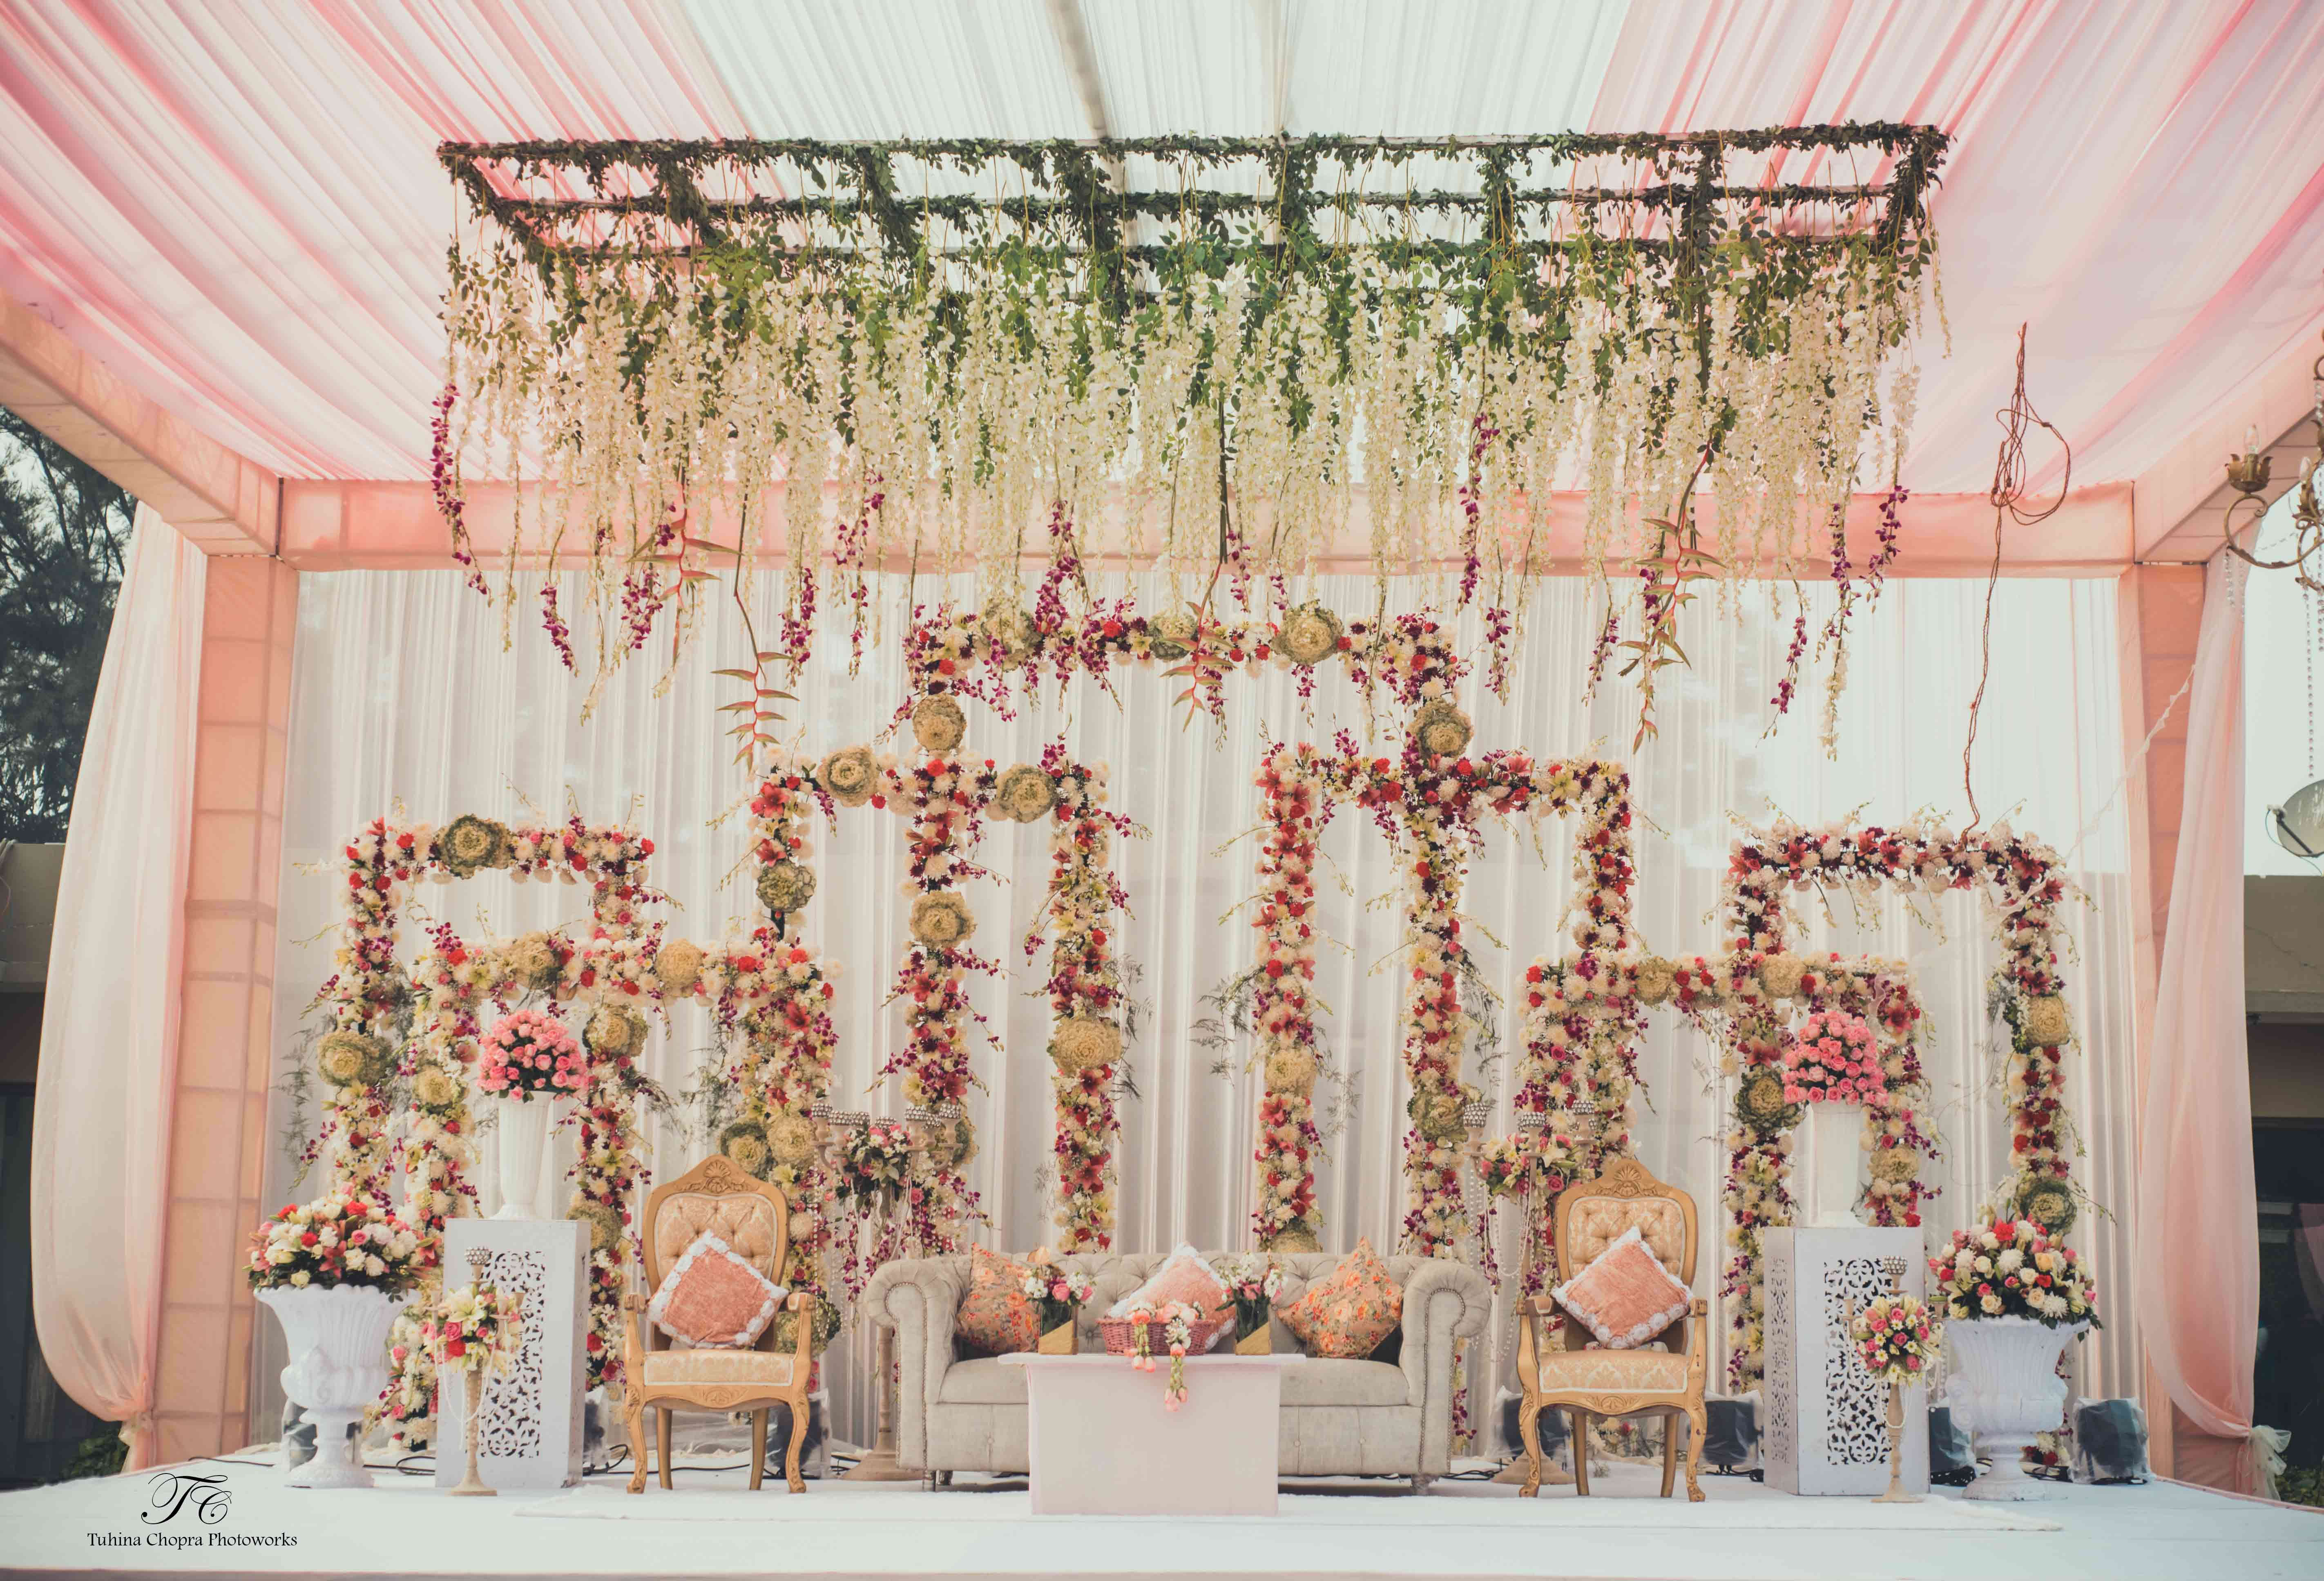 decoration ideas:tuhina chopra photoworks